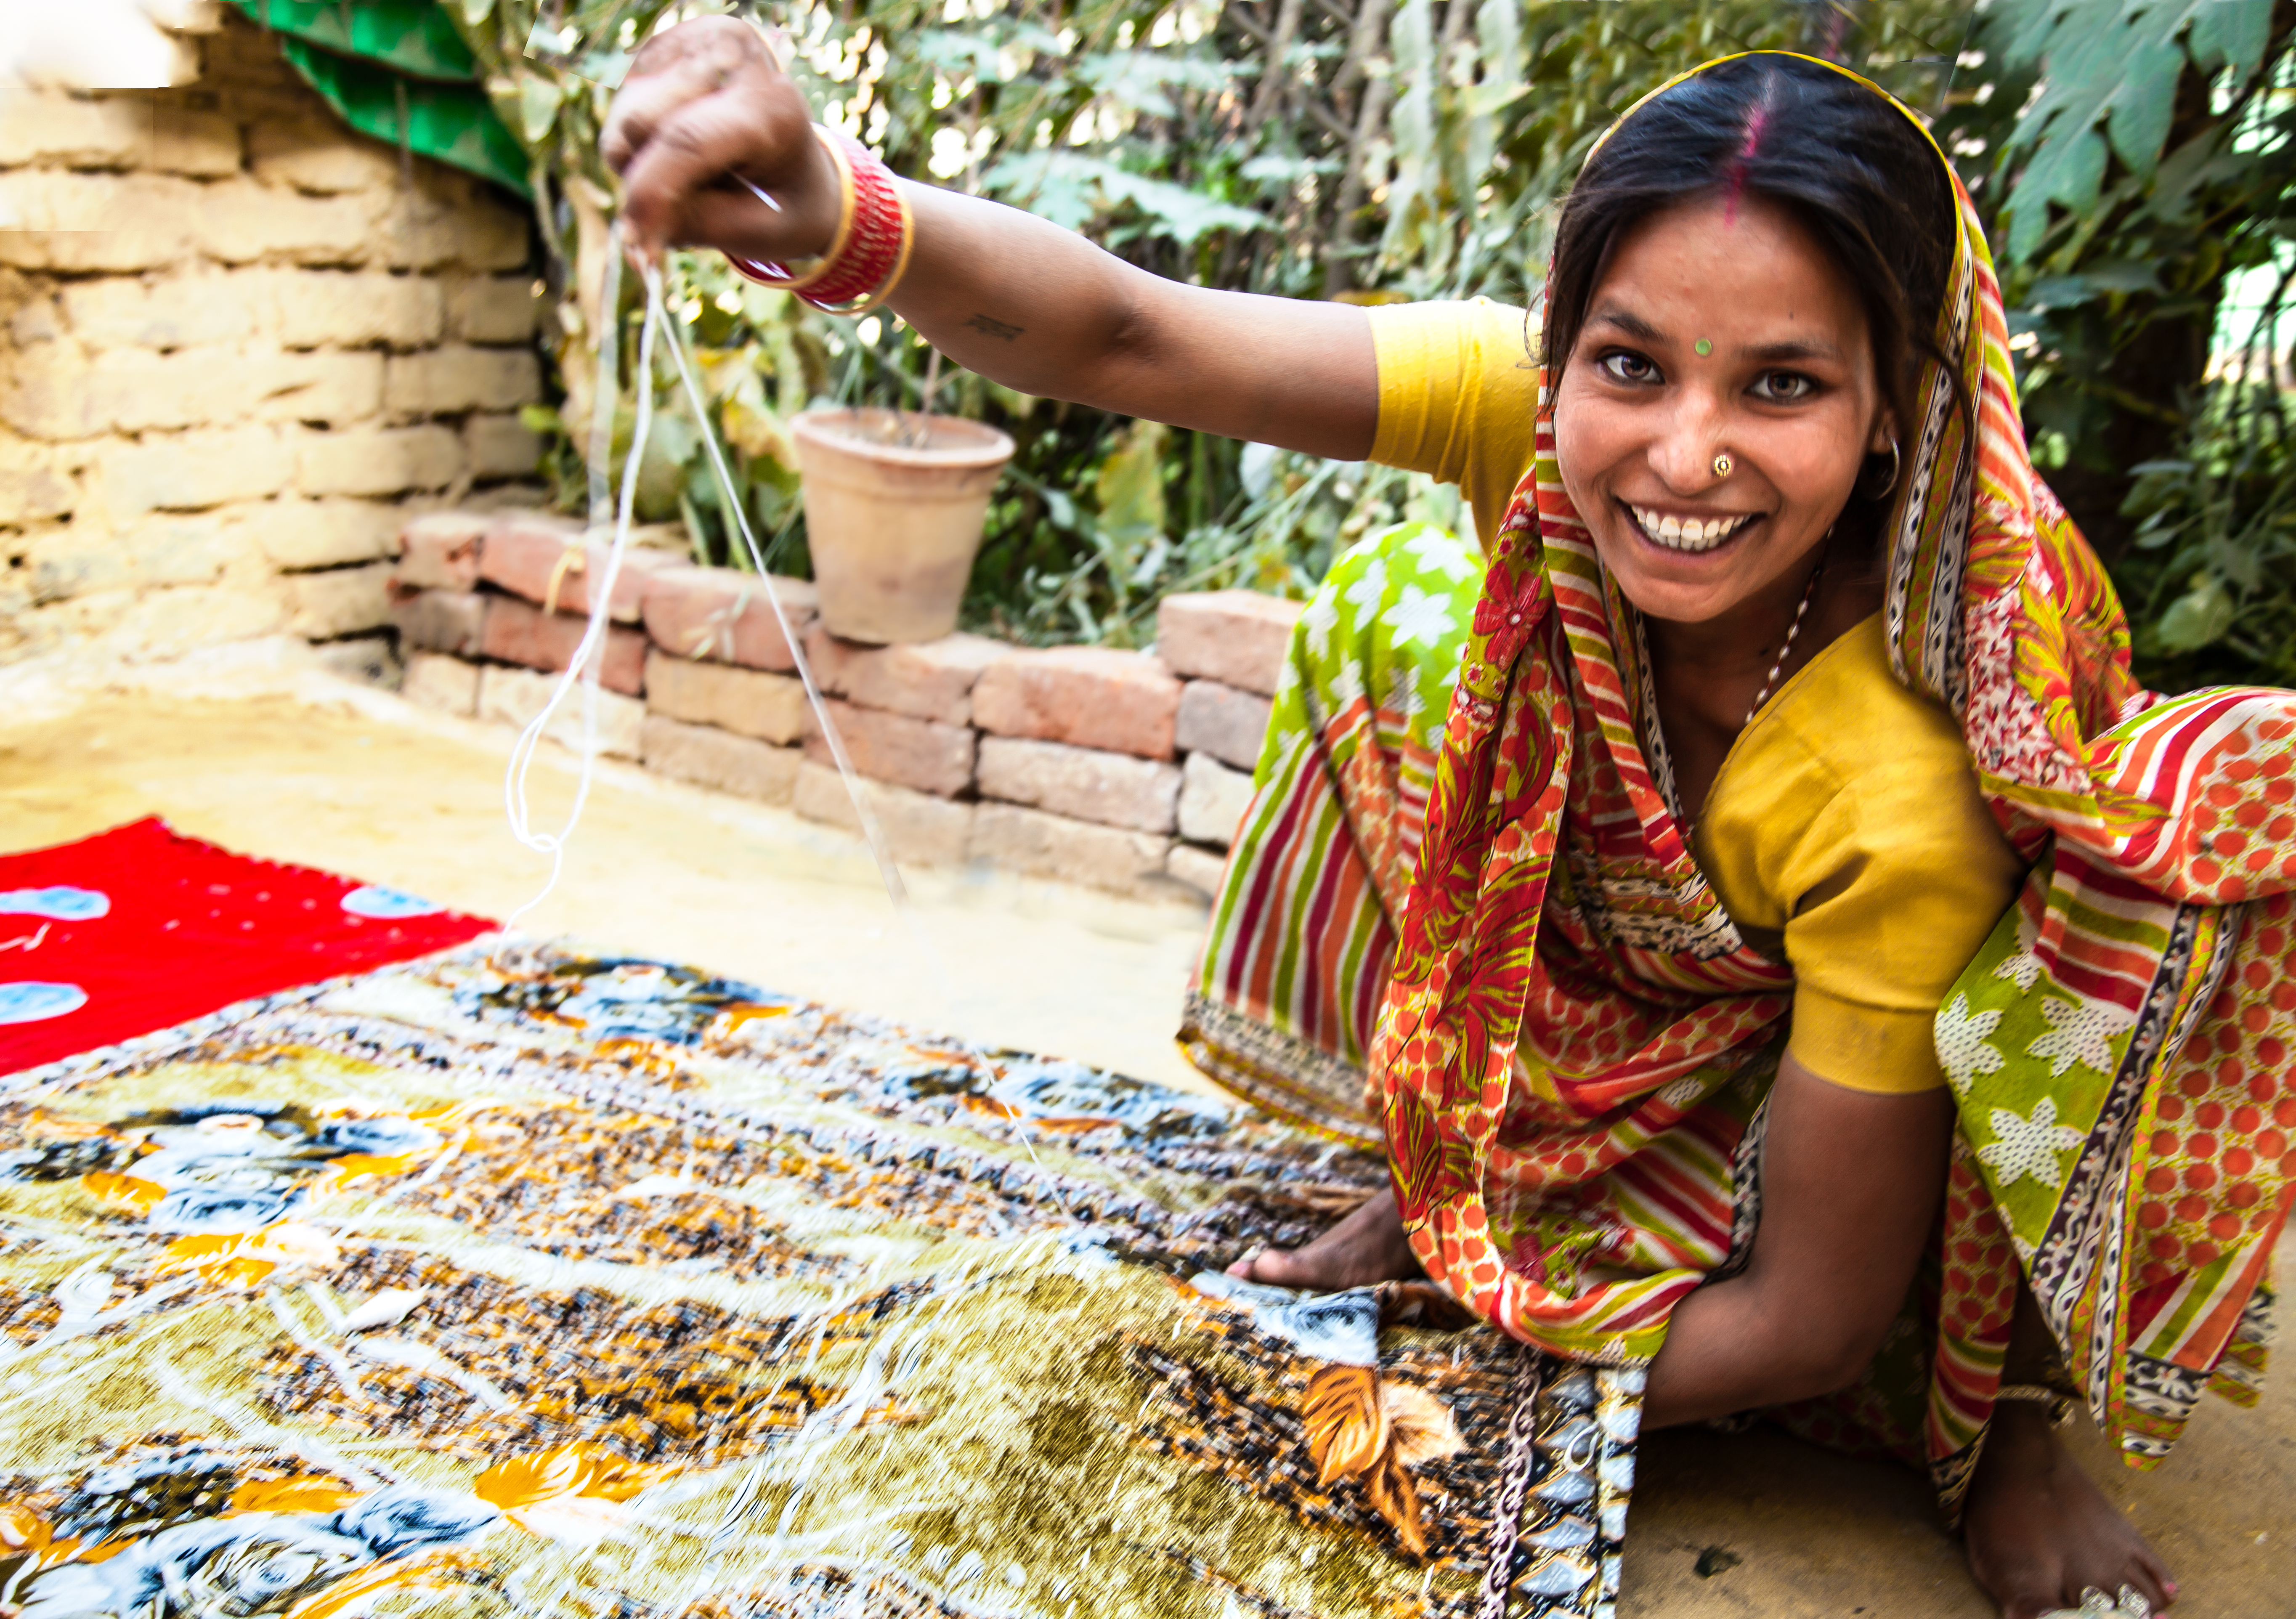 Woman quilting sewing craft India